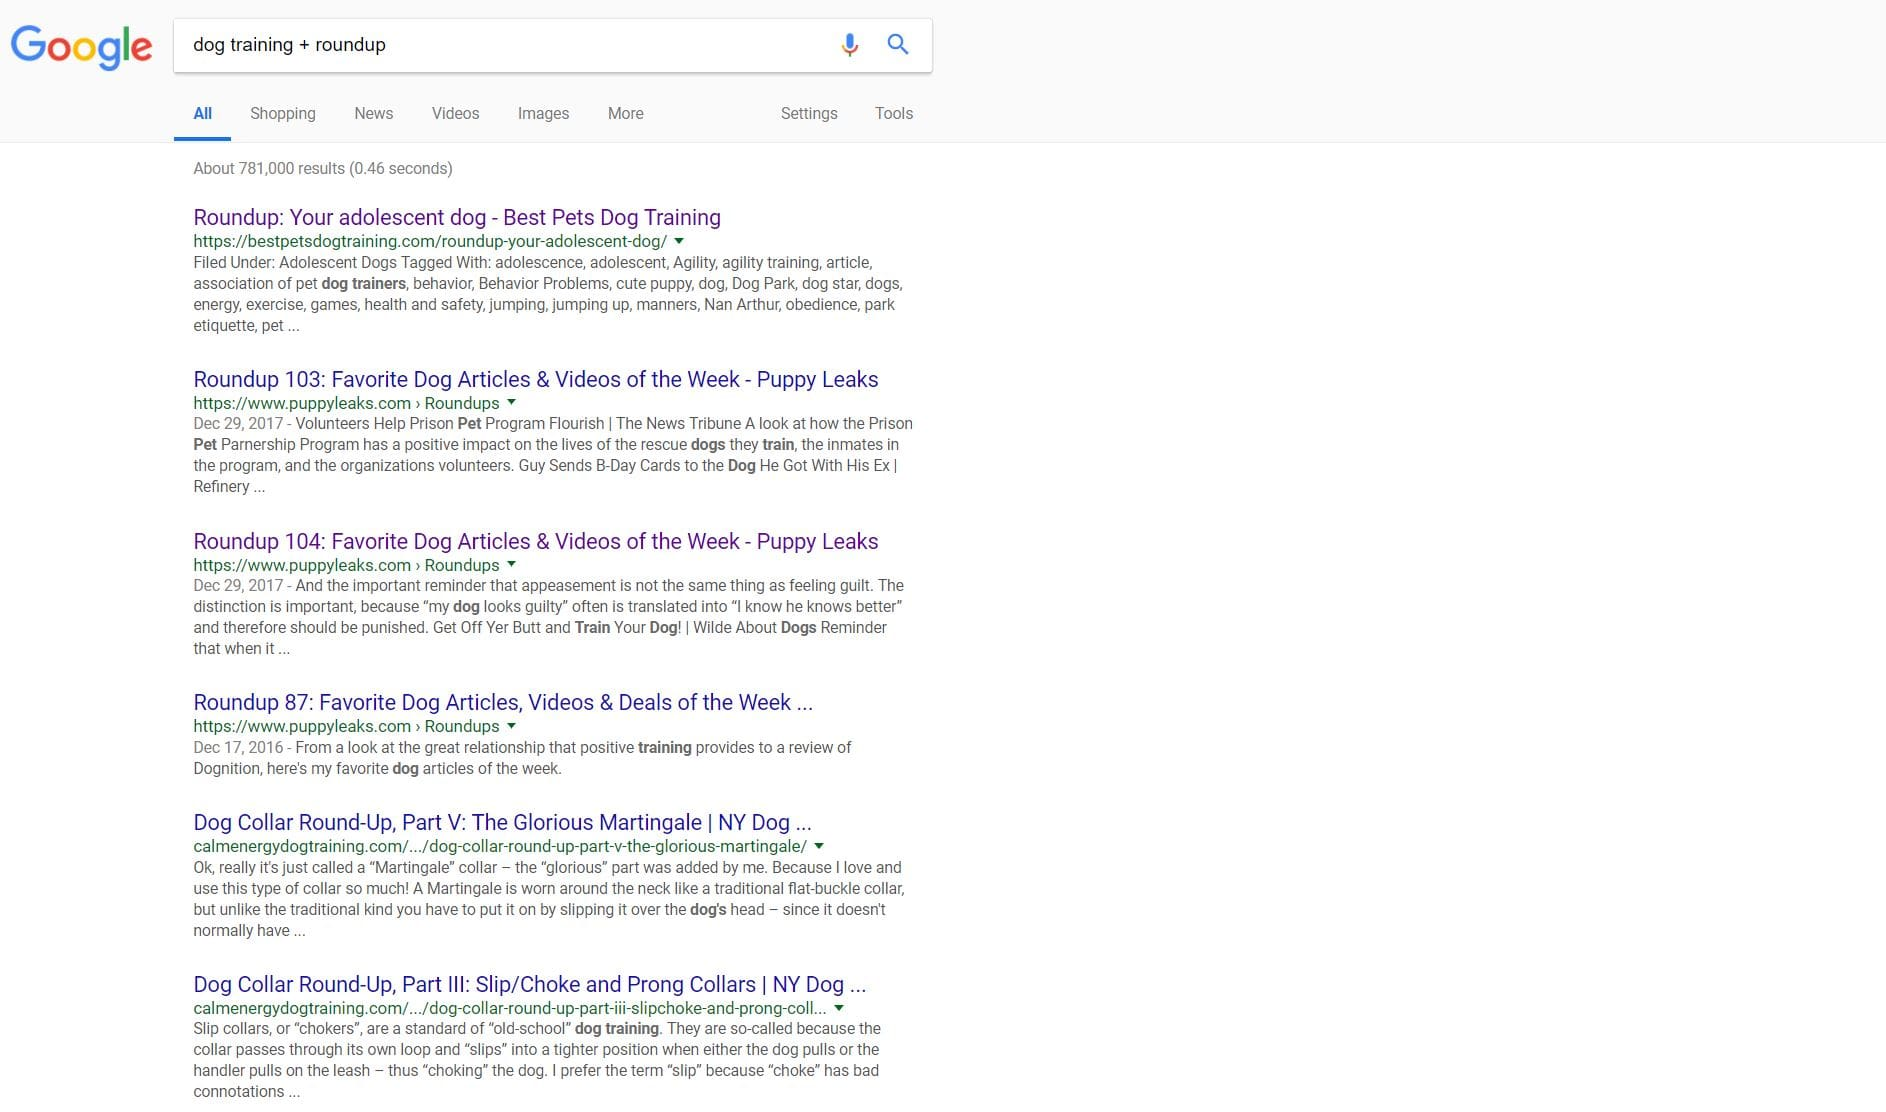 google search engine results page example